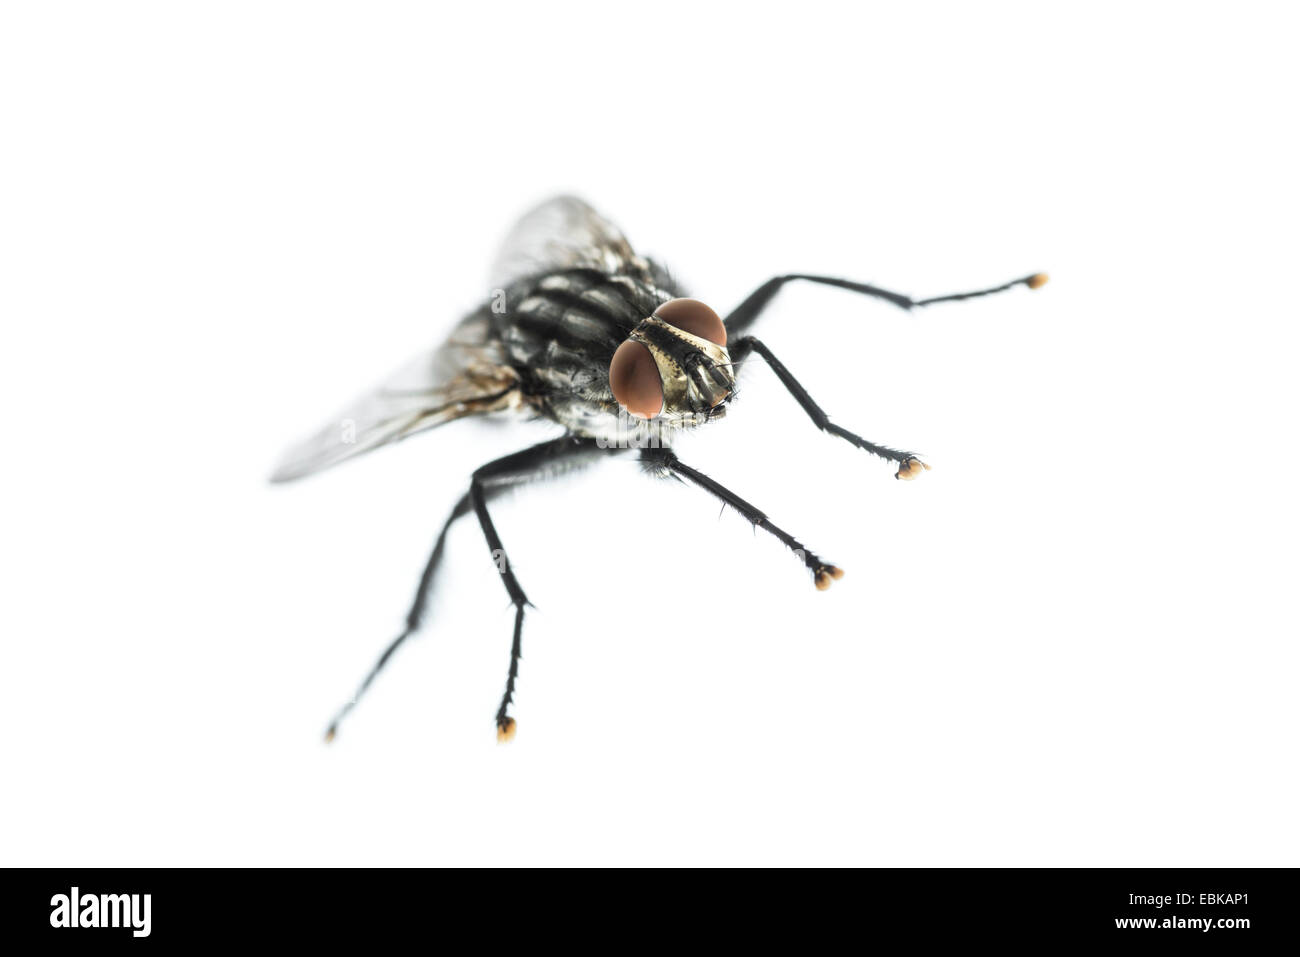 Close-up of a common housefly against a white background - Stock Image